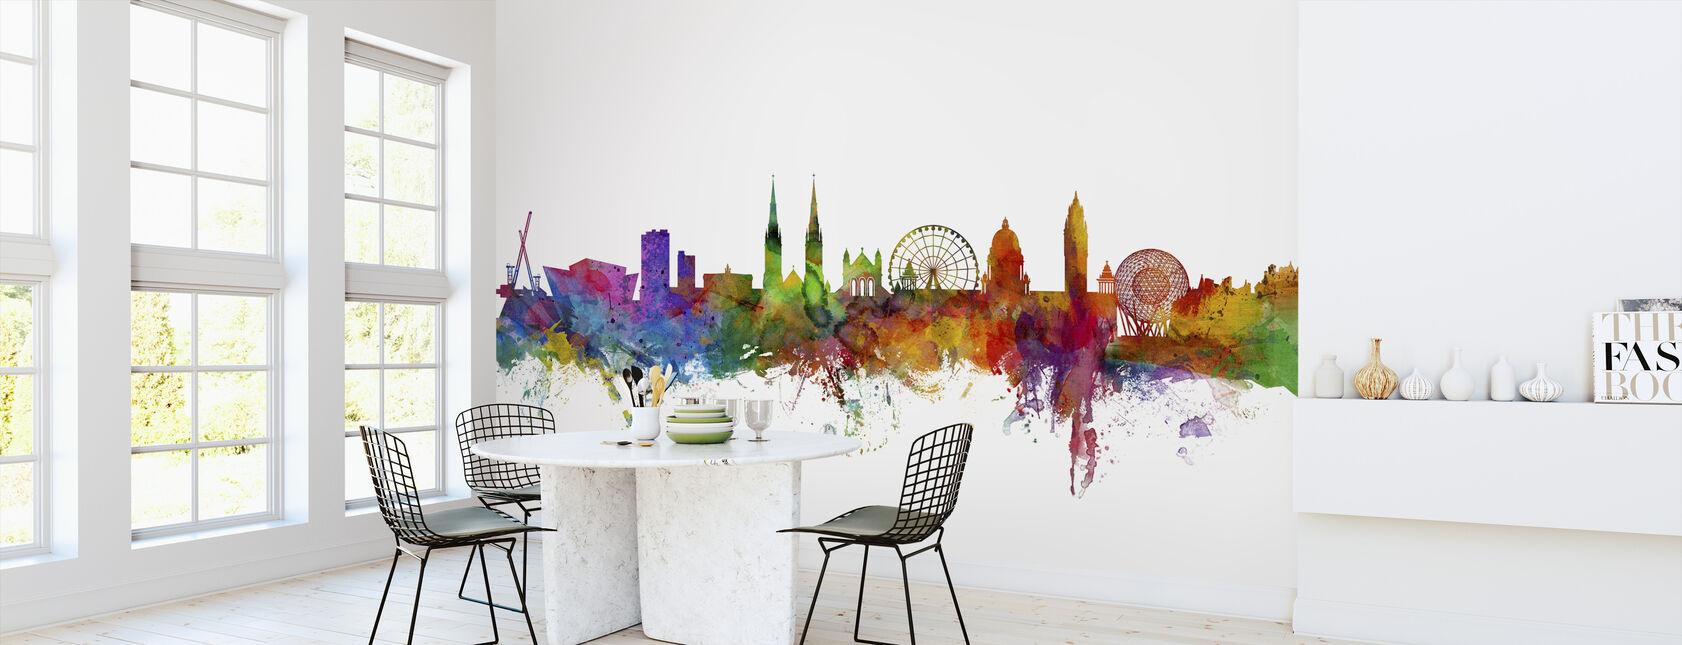 Belfast Northern Ireland Skyline - Wallpaper - Kitchen